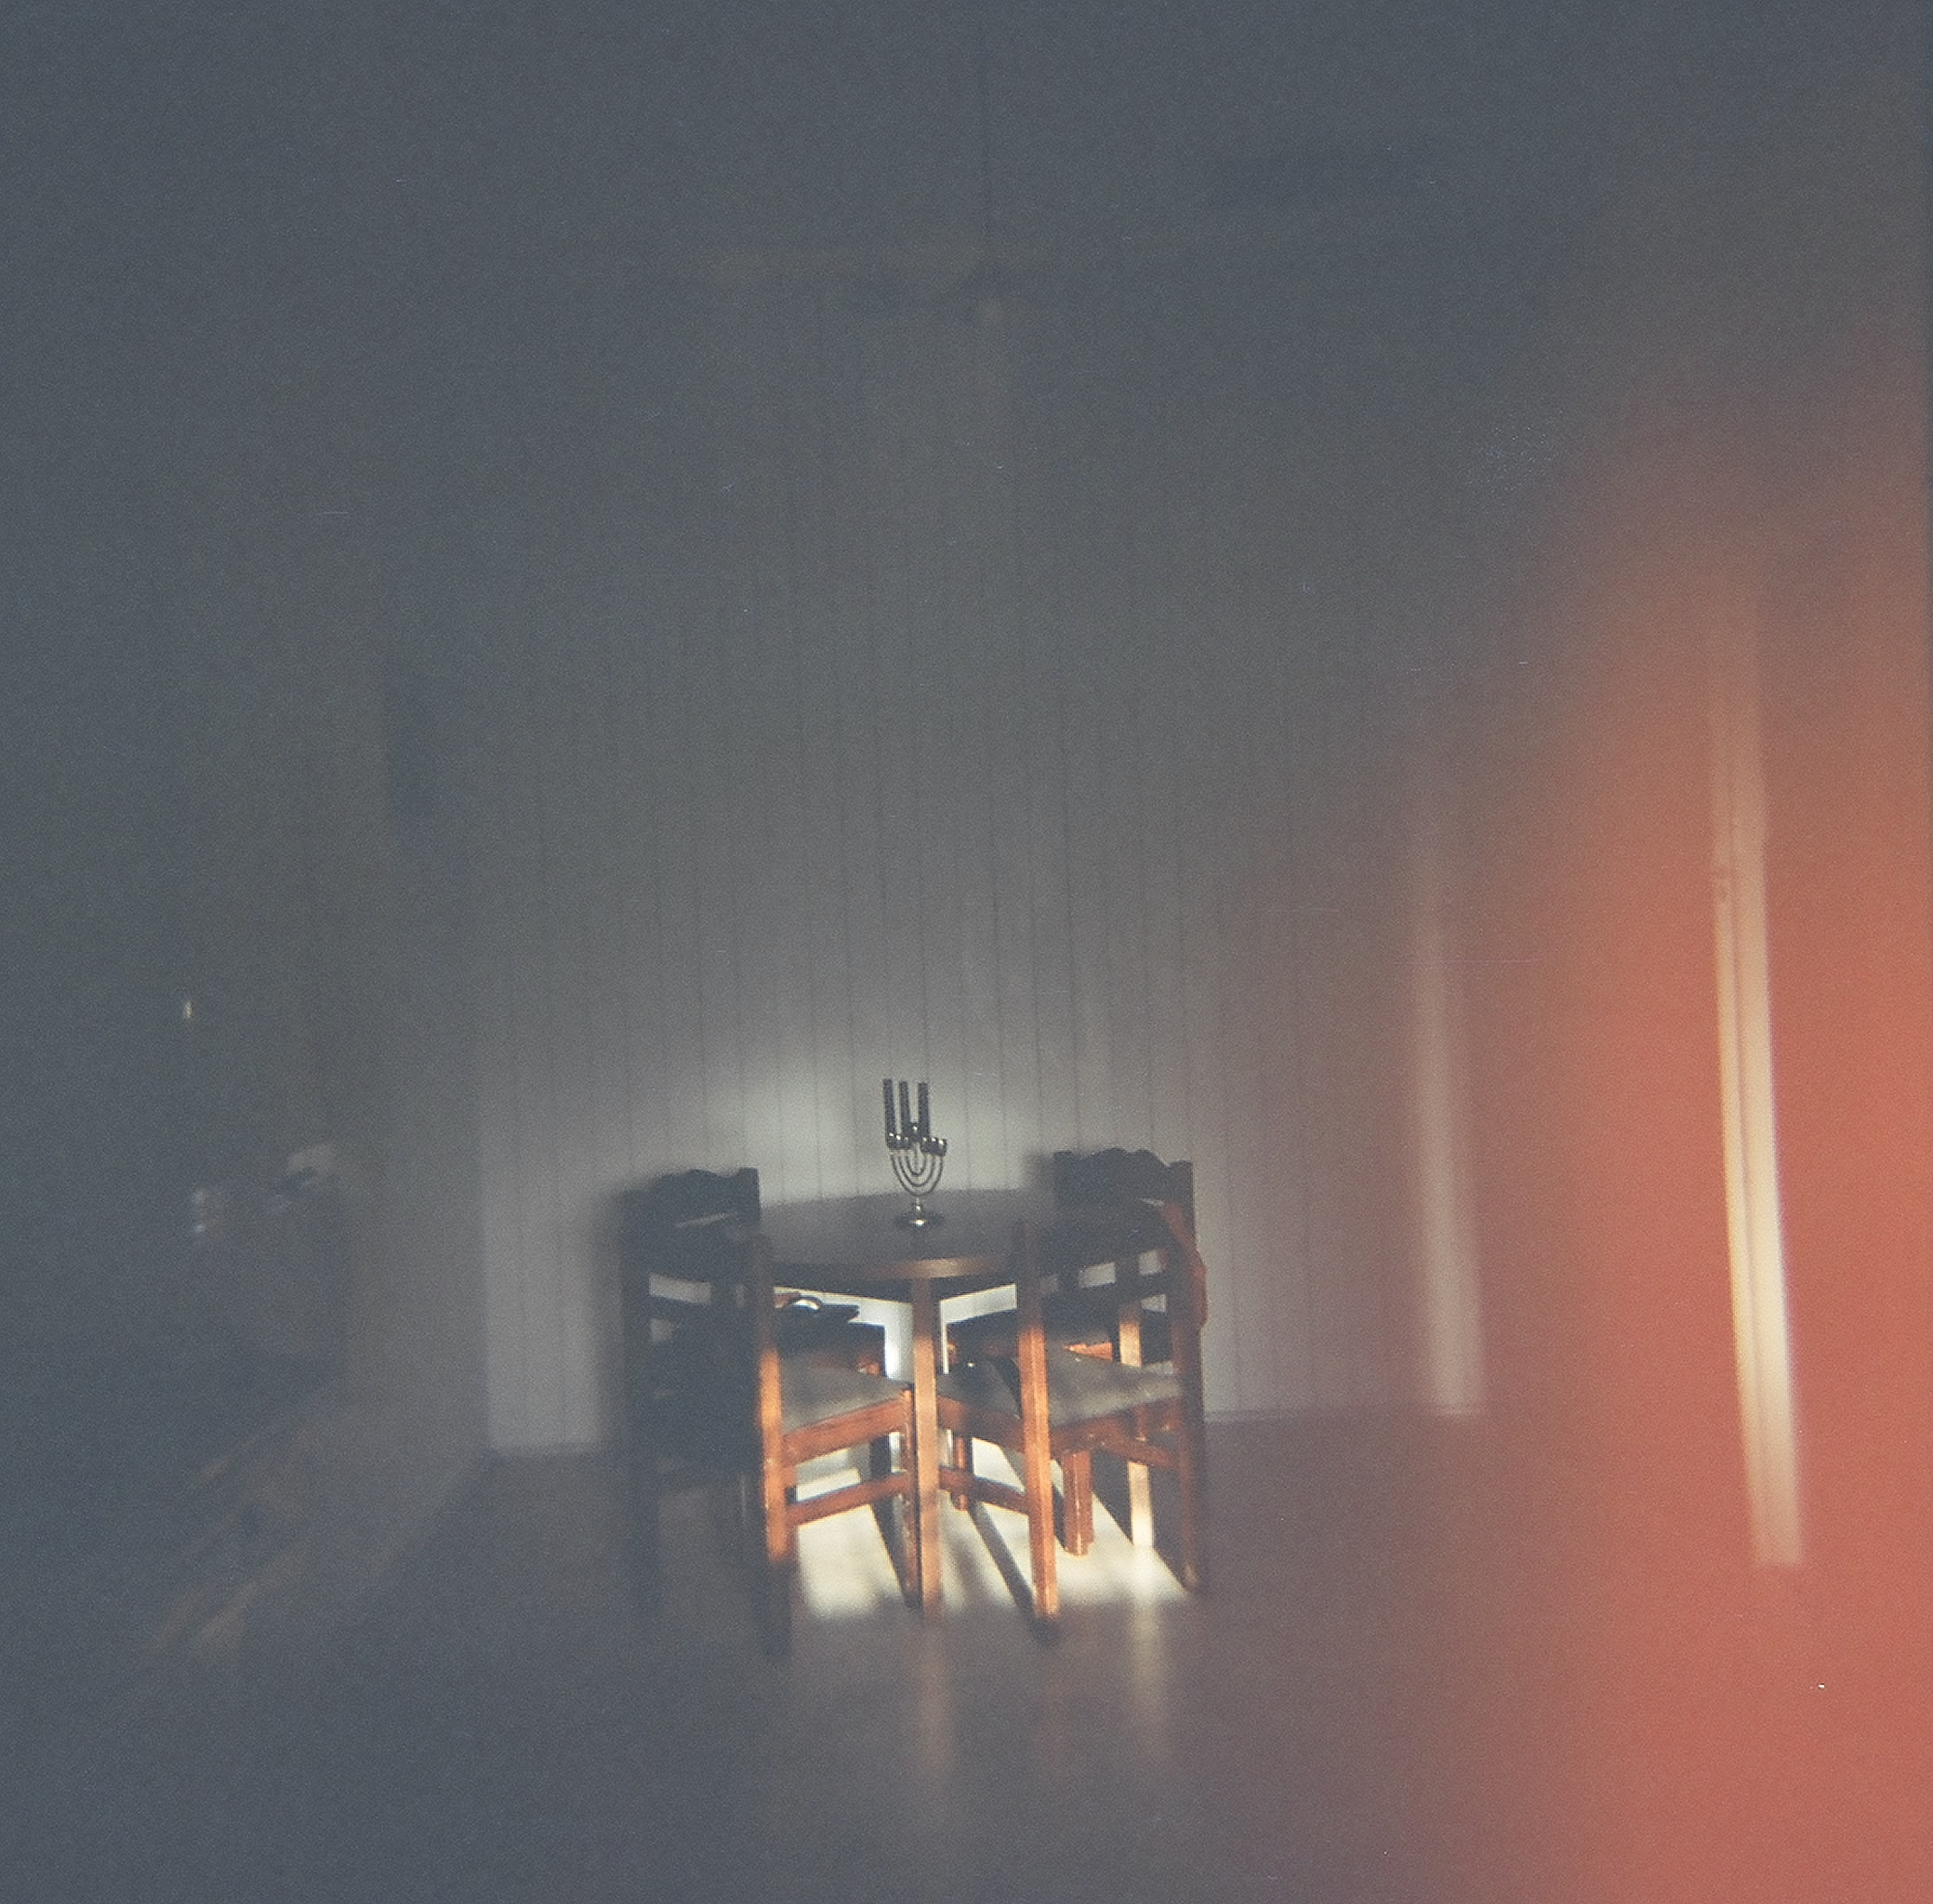 A dining room illuminated by sunlight, shot on 120mm film